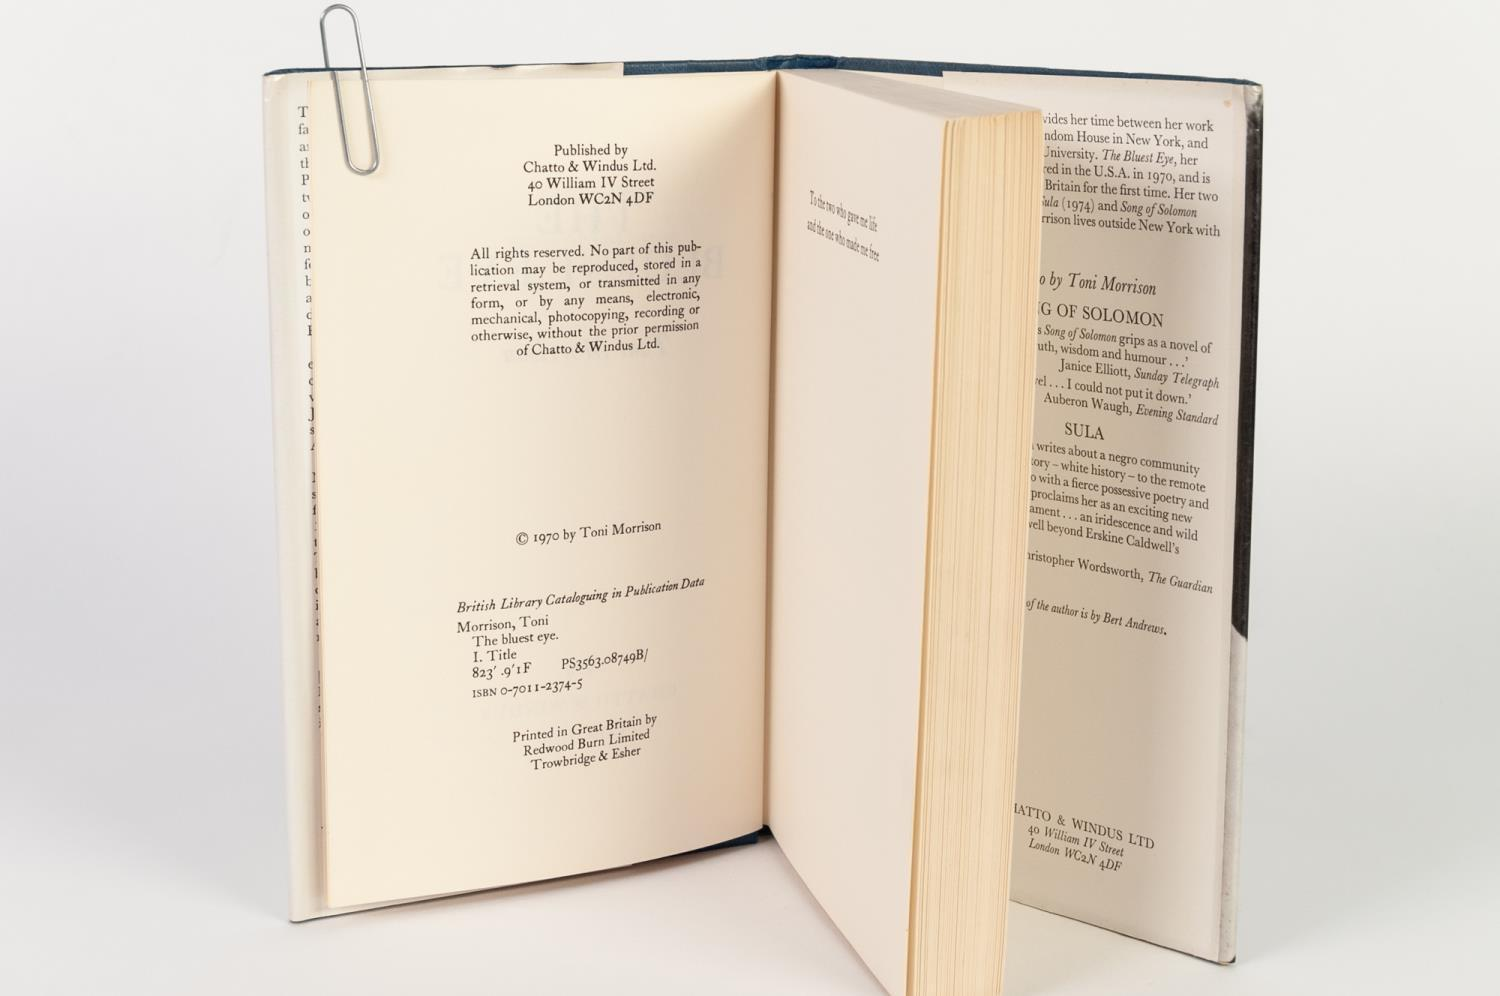 Lot 145 - TONI MORRISON - THE BLUEST EYE published Chatto and Windus 1979 first UK edition with original